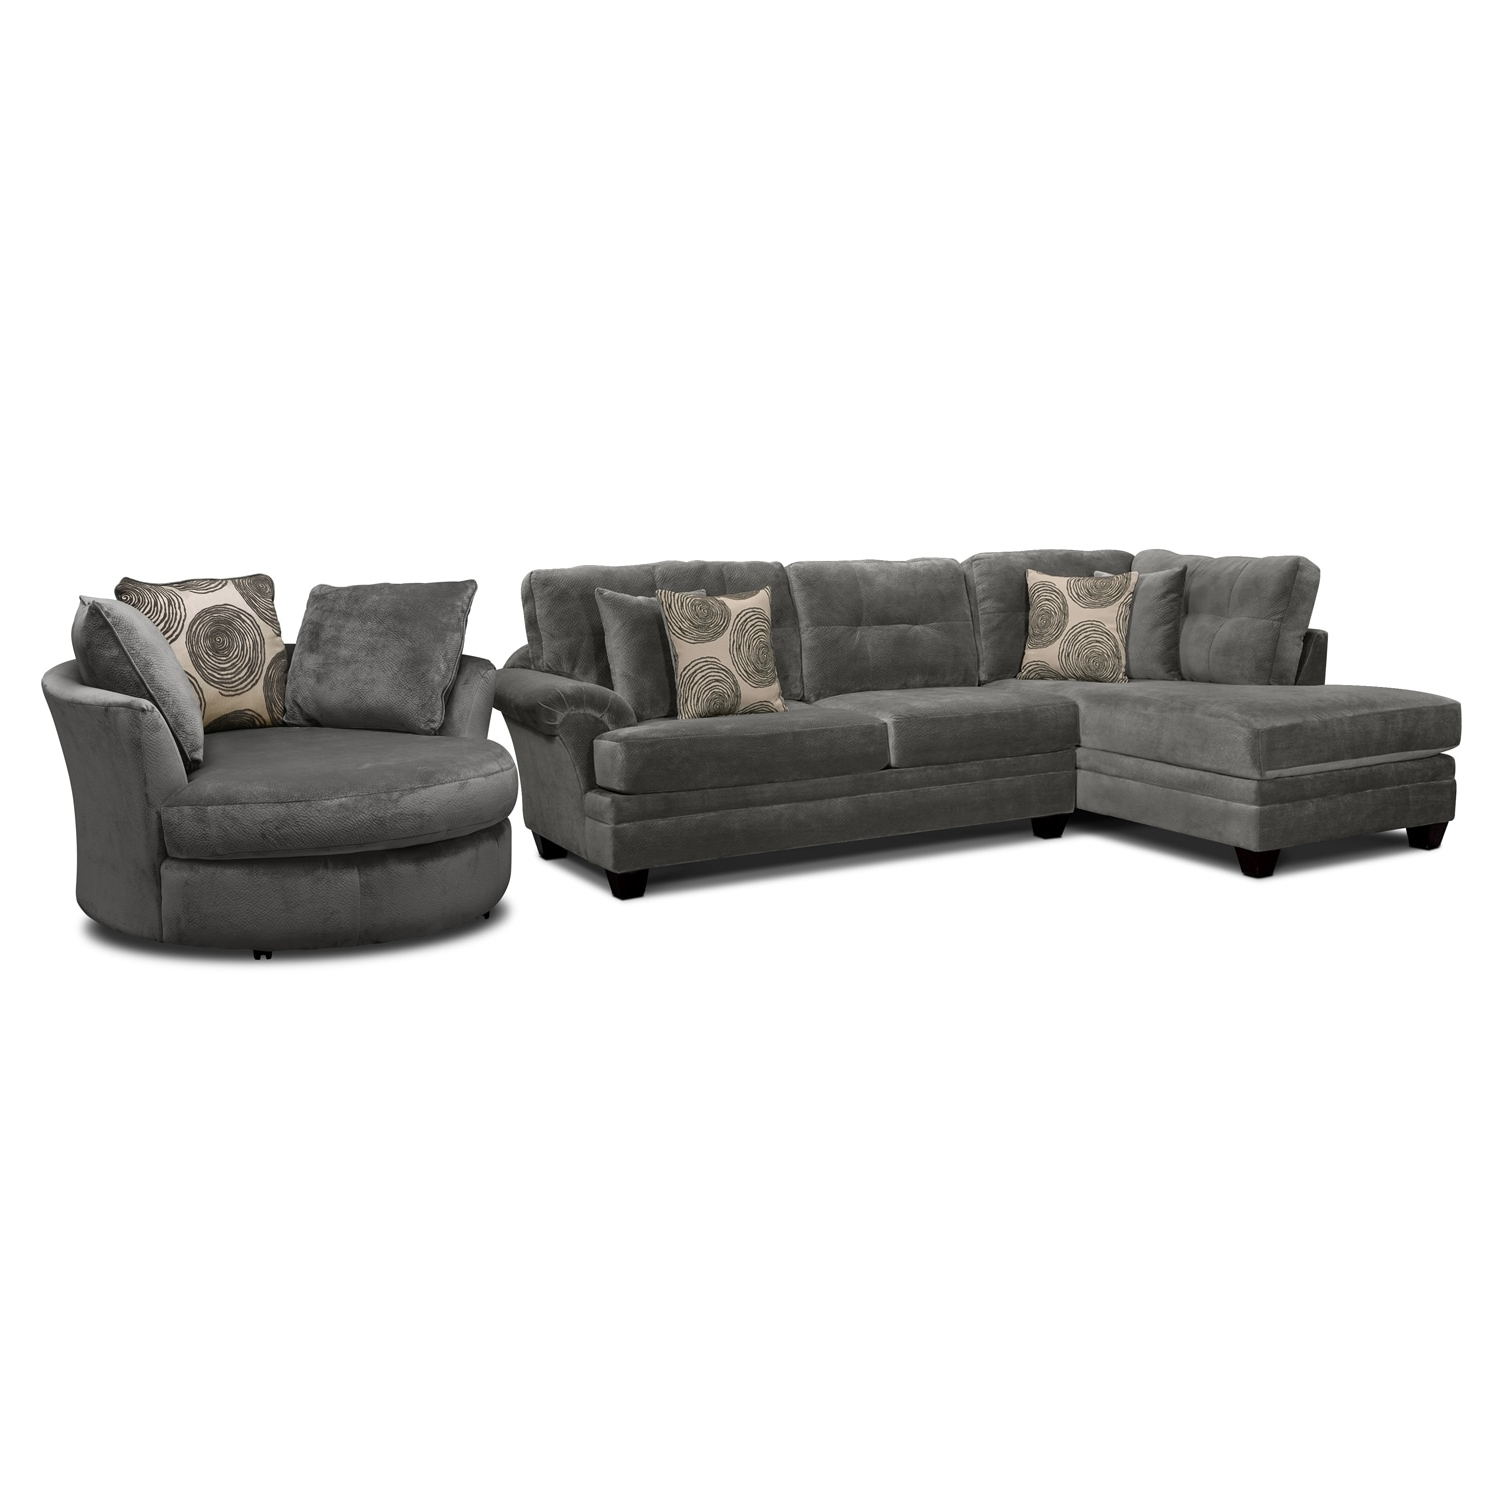 Preferred Cordelle 2 Piece Left Facing Chaise Sectional And Swivel Chair Set Inside Sofas With Swivel Chair (View 10 of 15)